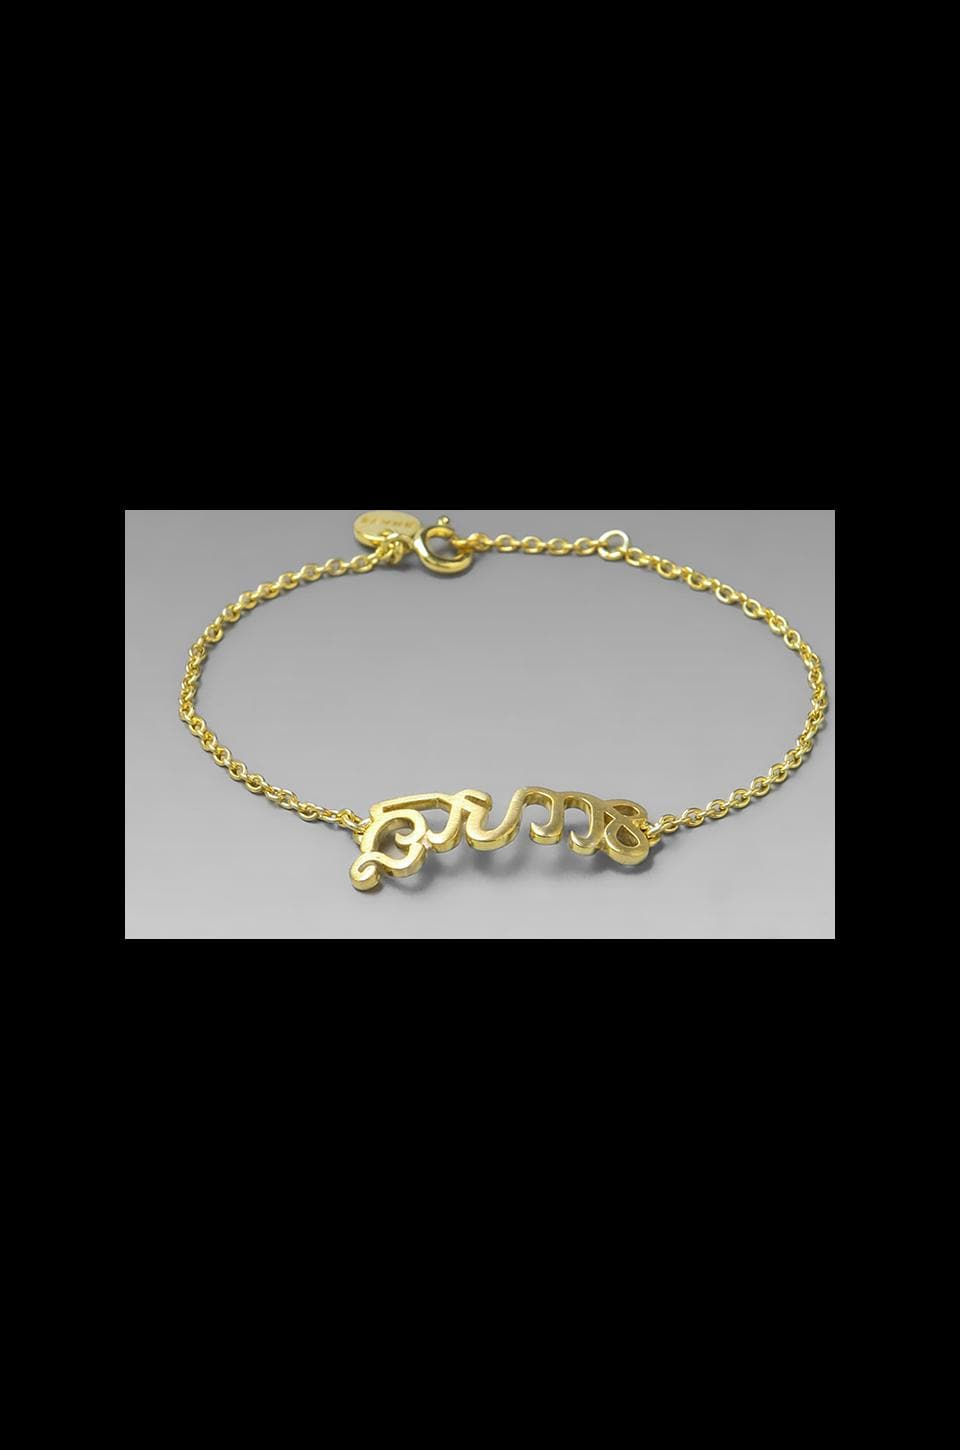 The Brave Collection Chain Bracelet in 14K Gold